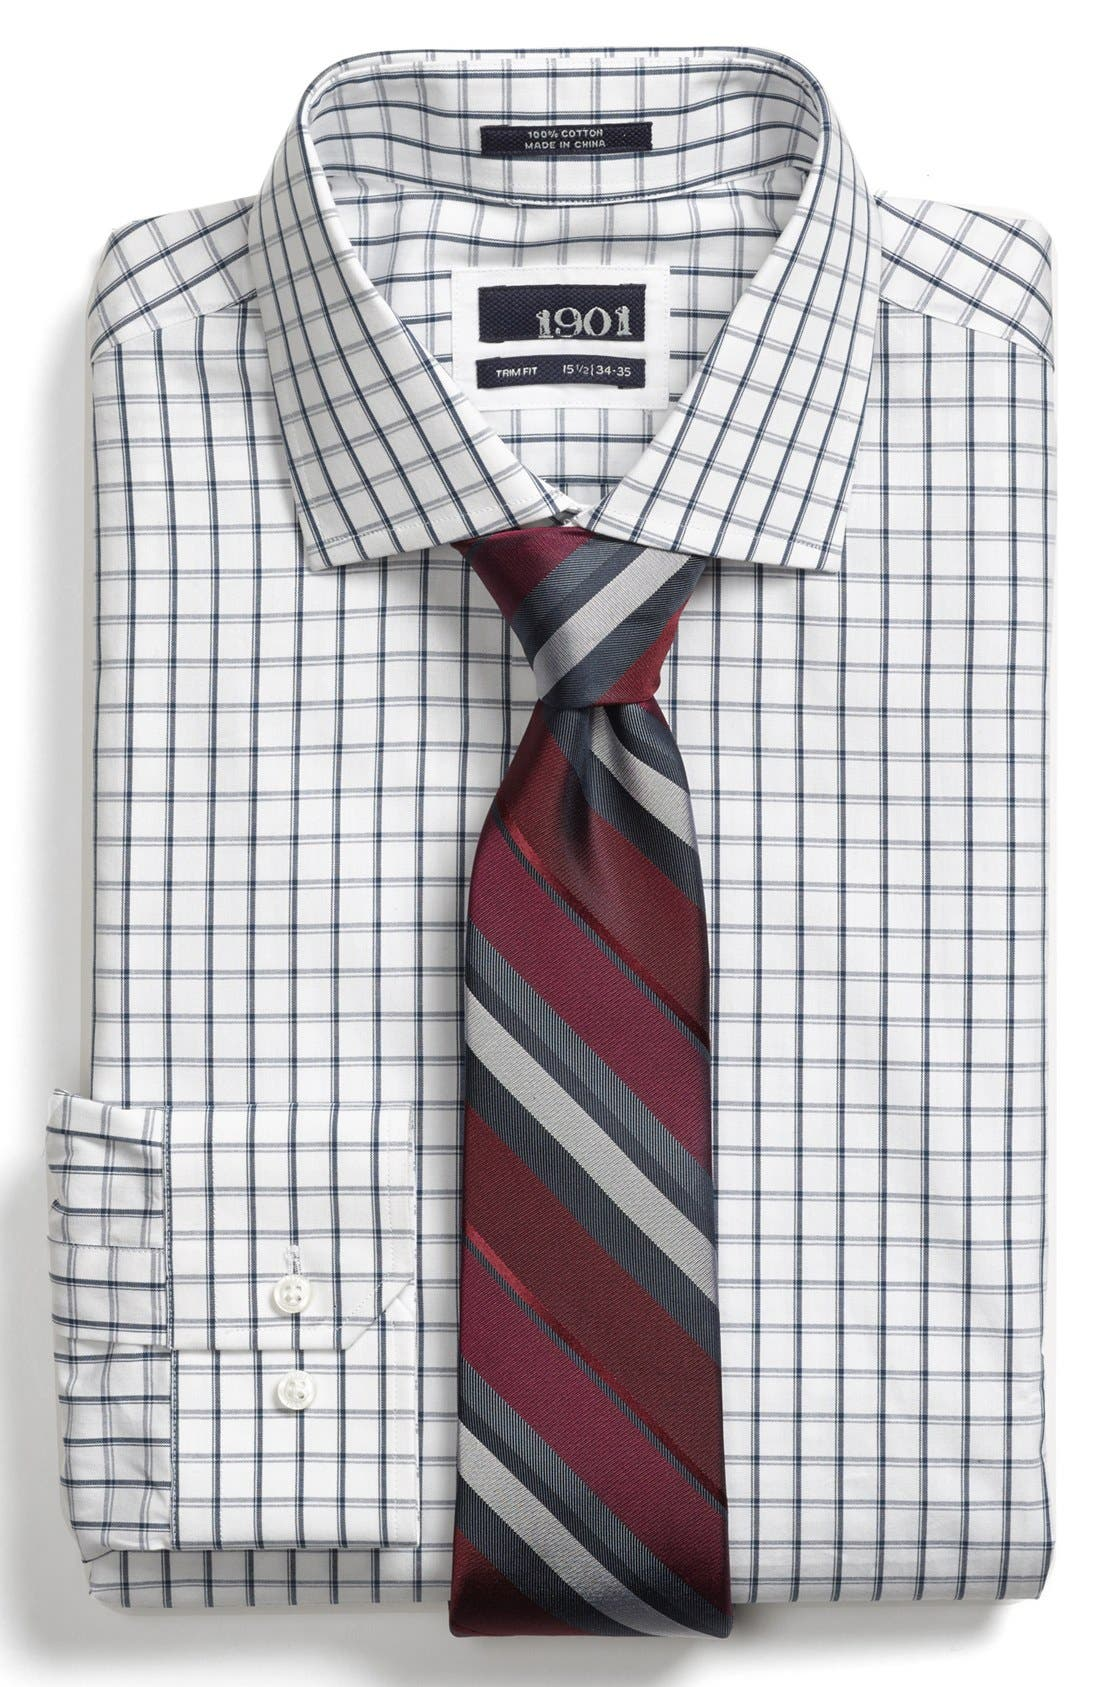 Main Image - 1901 Trim Fit Check Dress Shirt